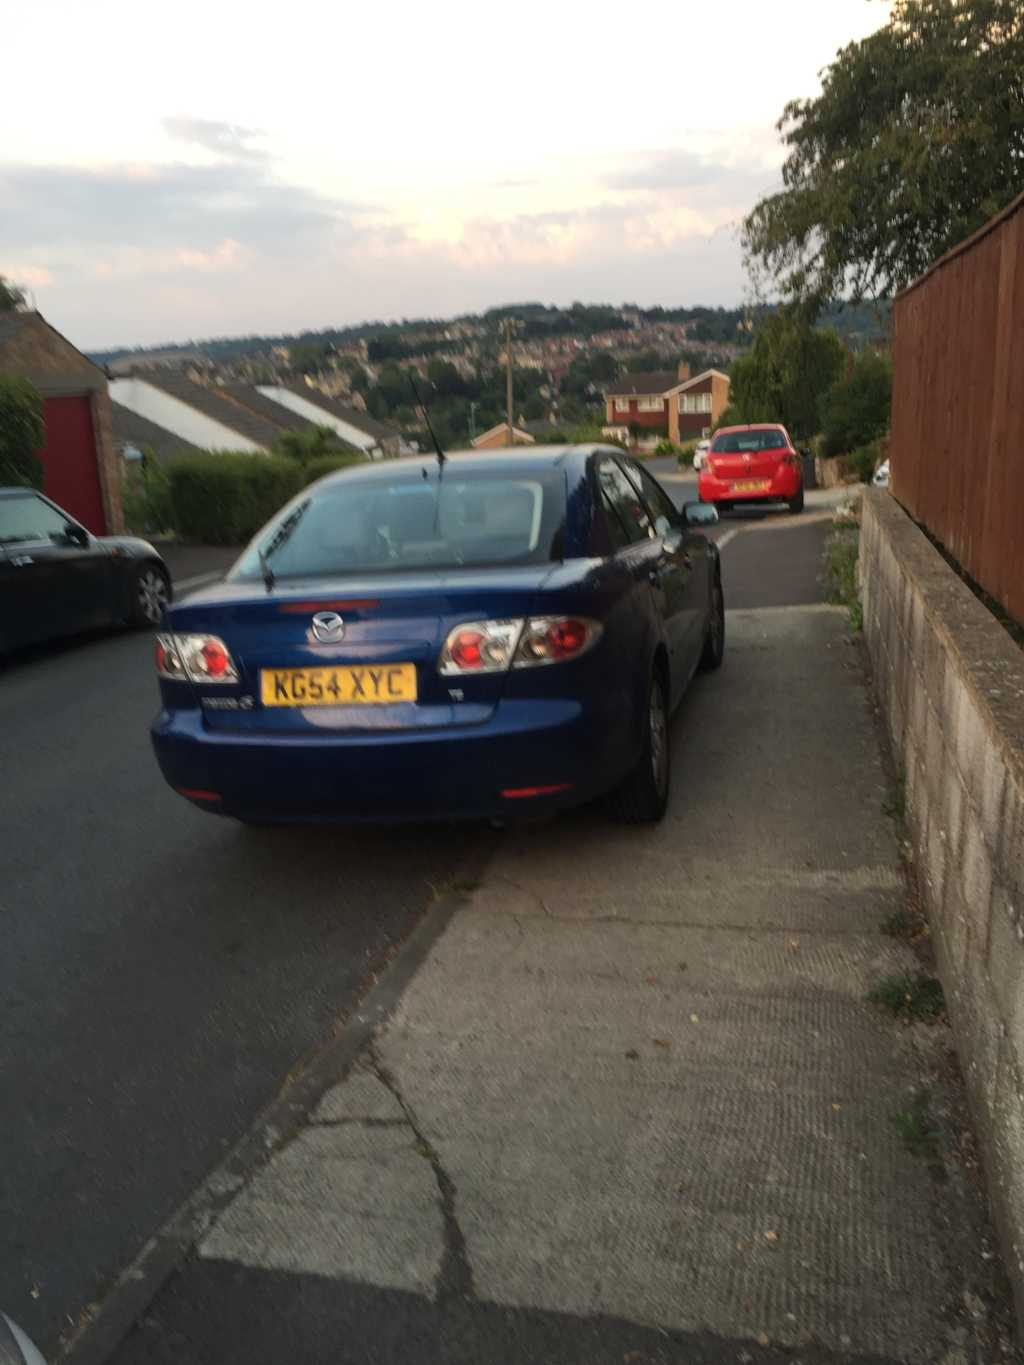 KG54XYC displaying Inconsiderate Parking